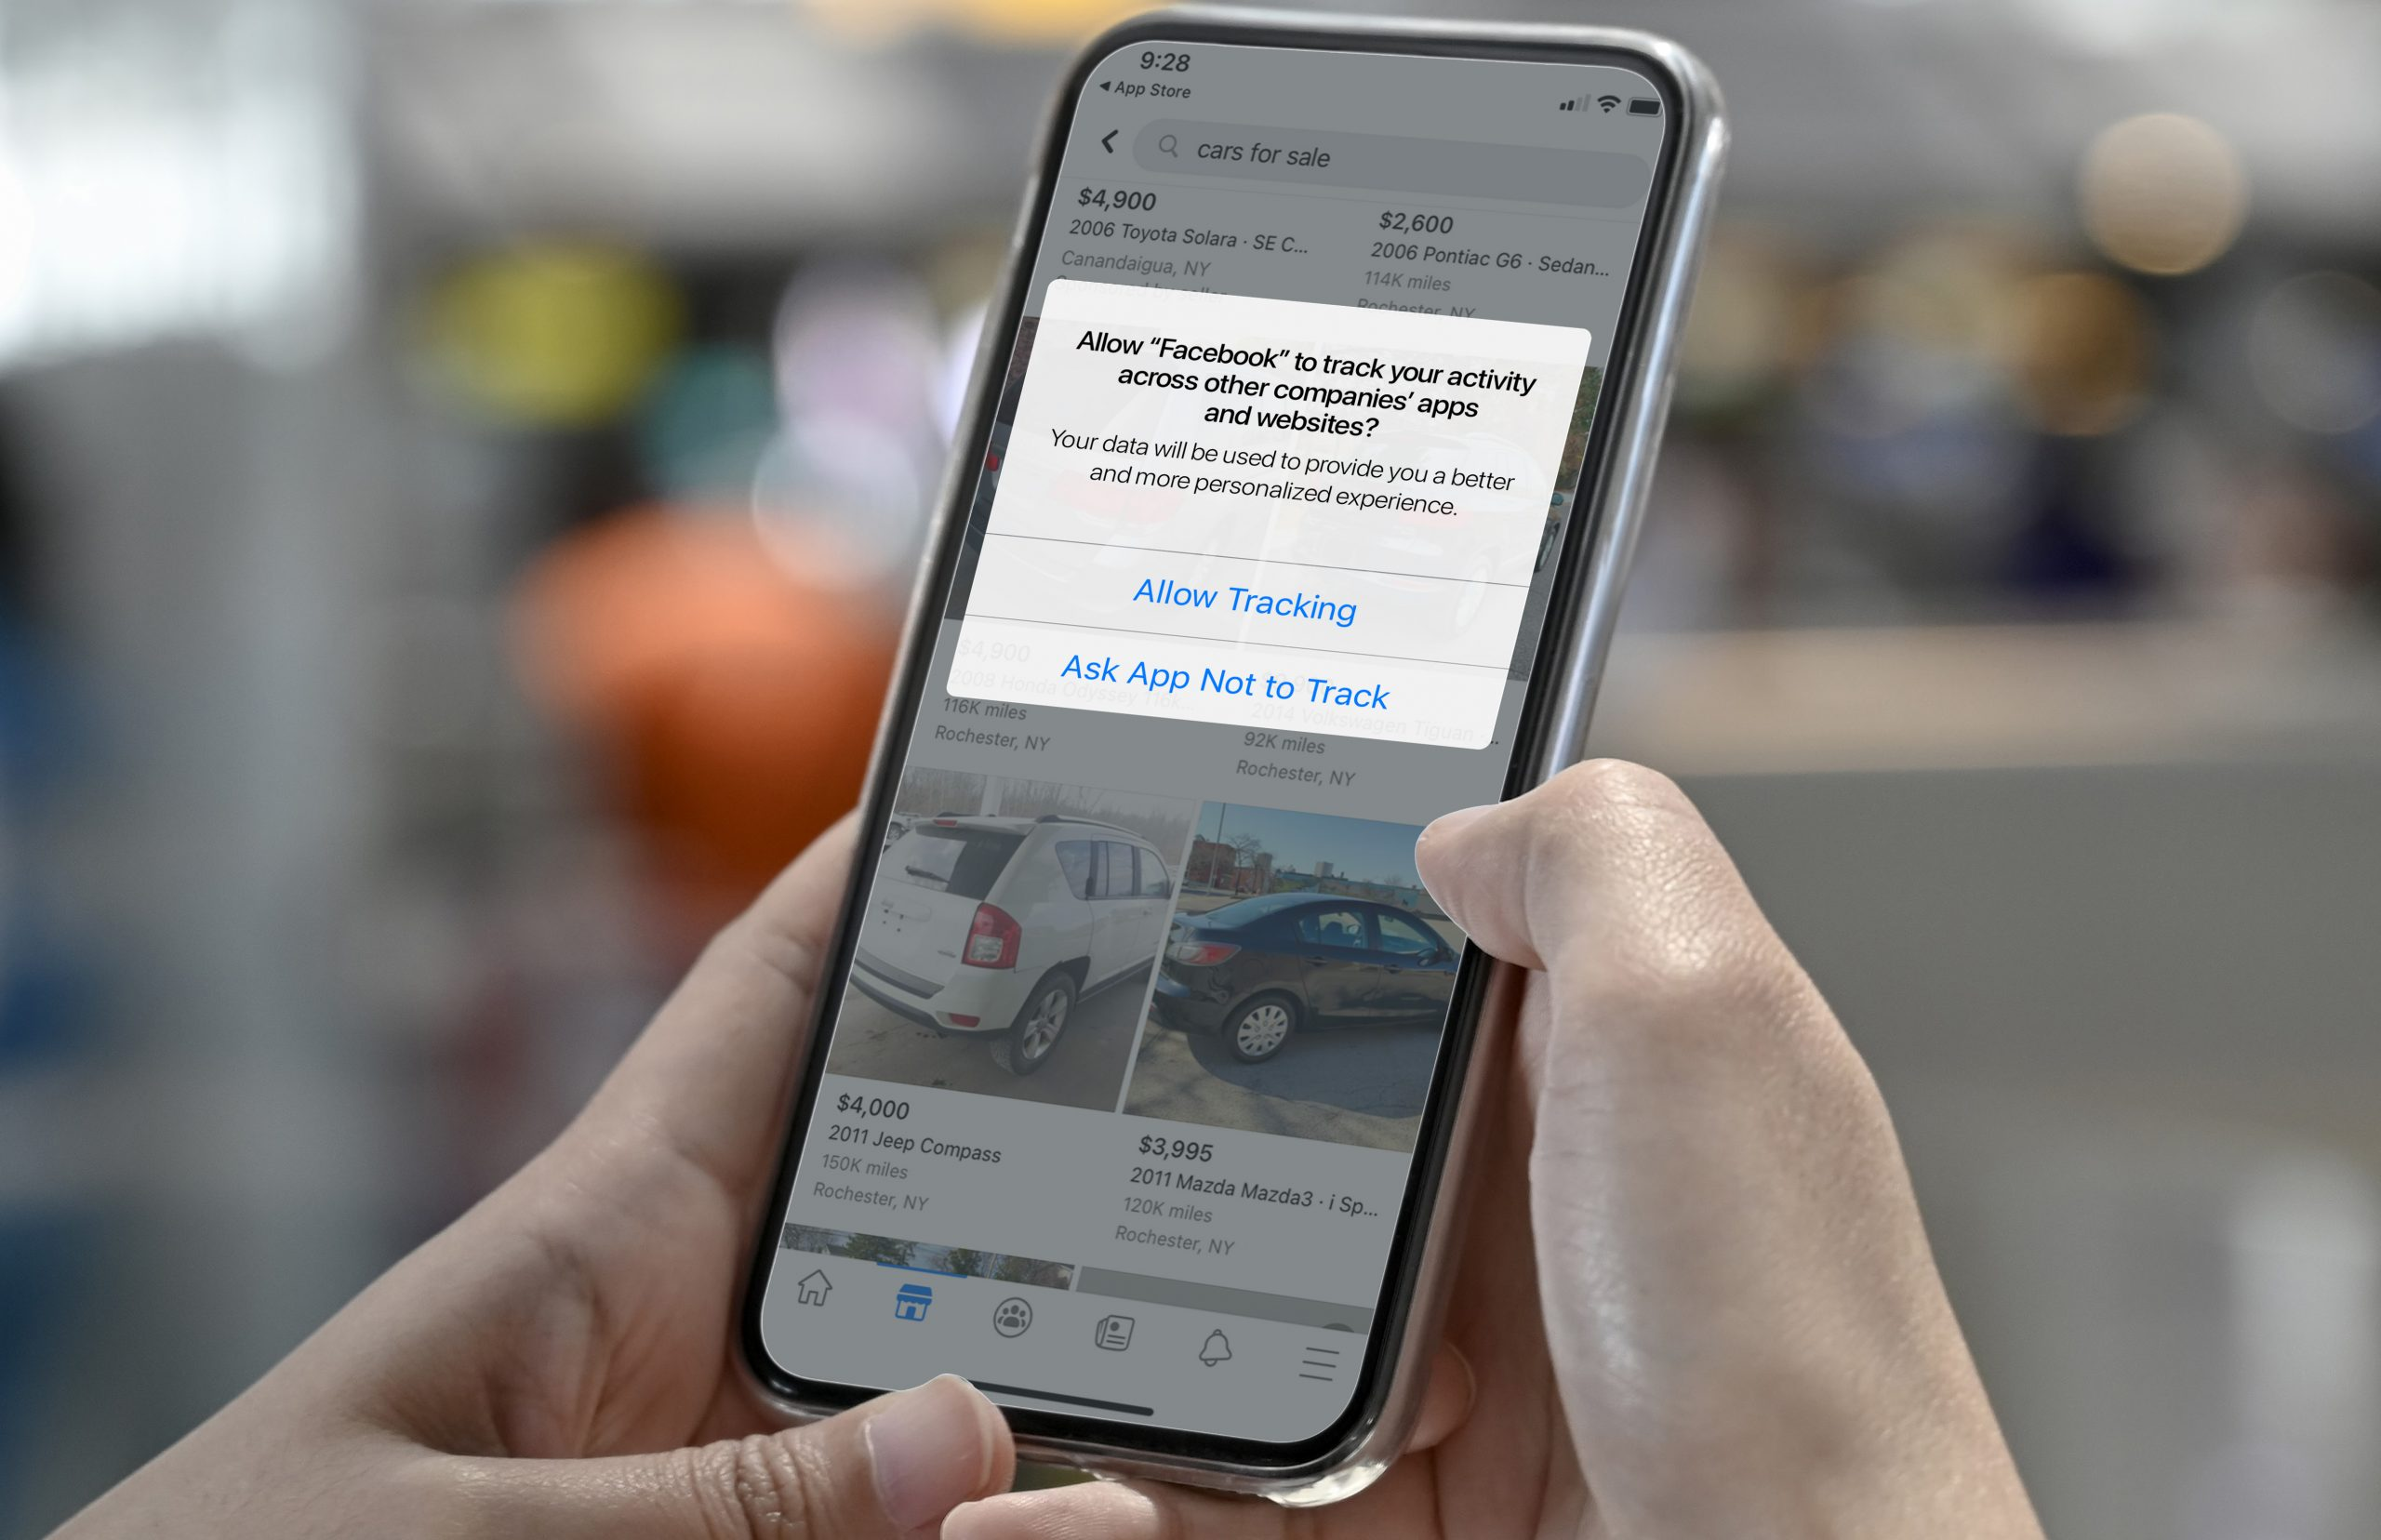 Hands holding smartphone displaying Ad Tracking Transparency prompt in iOS 14